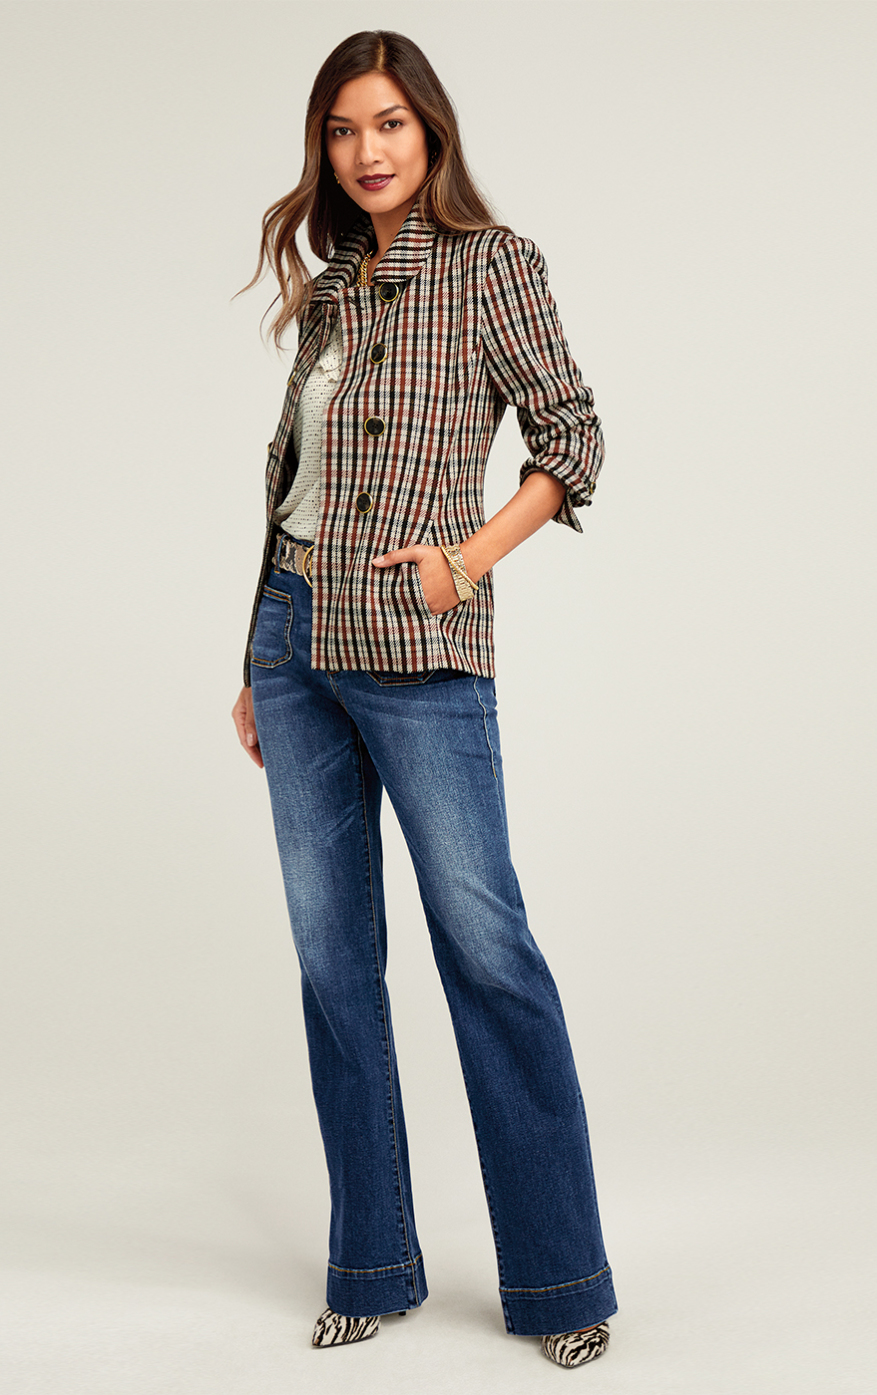 Jazzy Jacket in Toffee Plaid, Patch Pocket in Trader Wash, Morse Code Top in Code Print